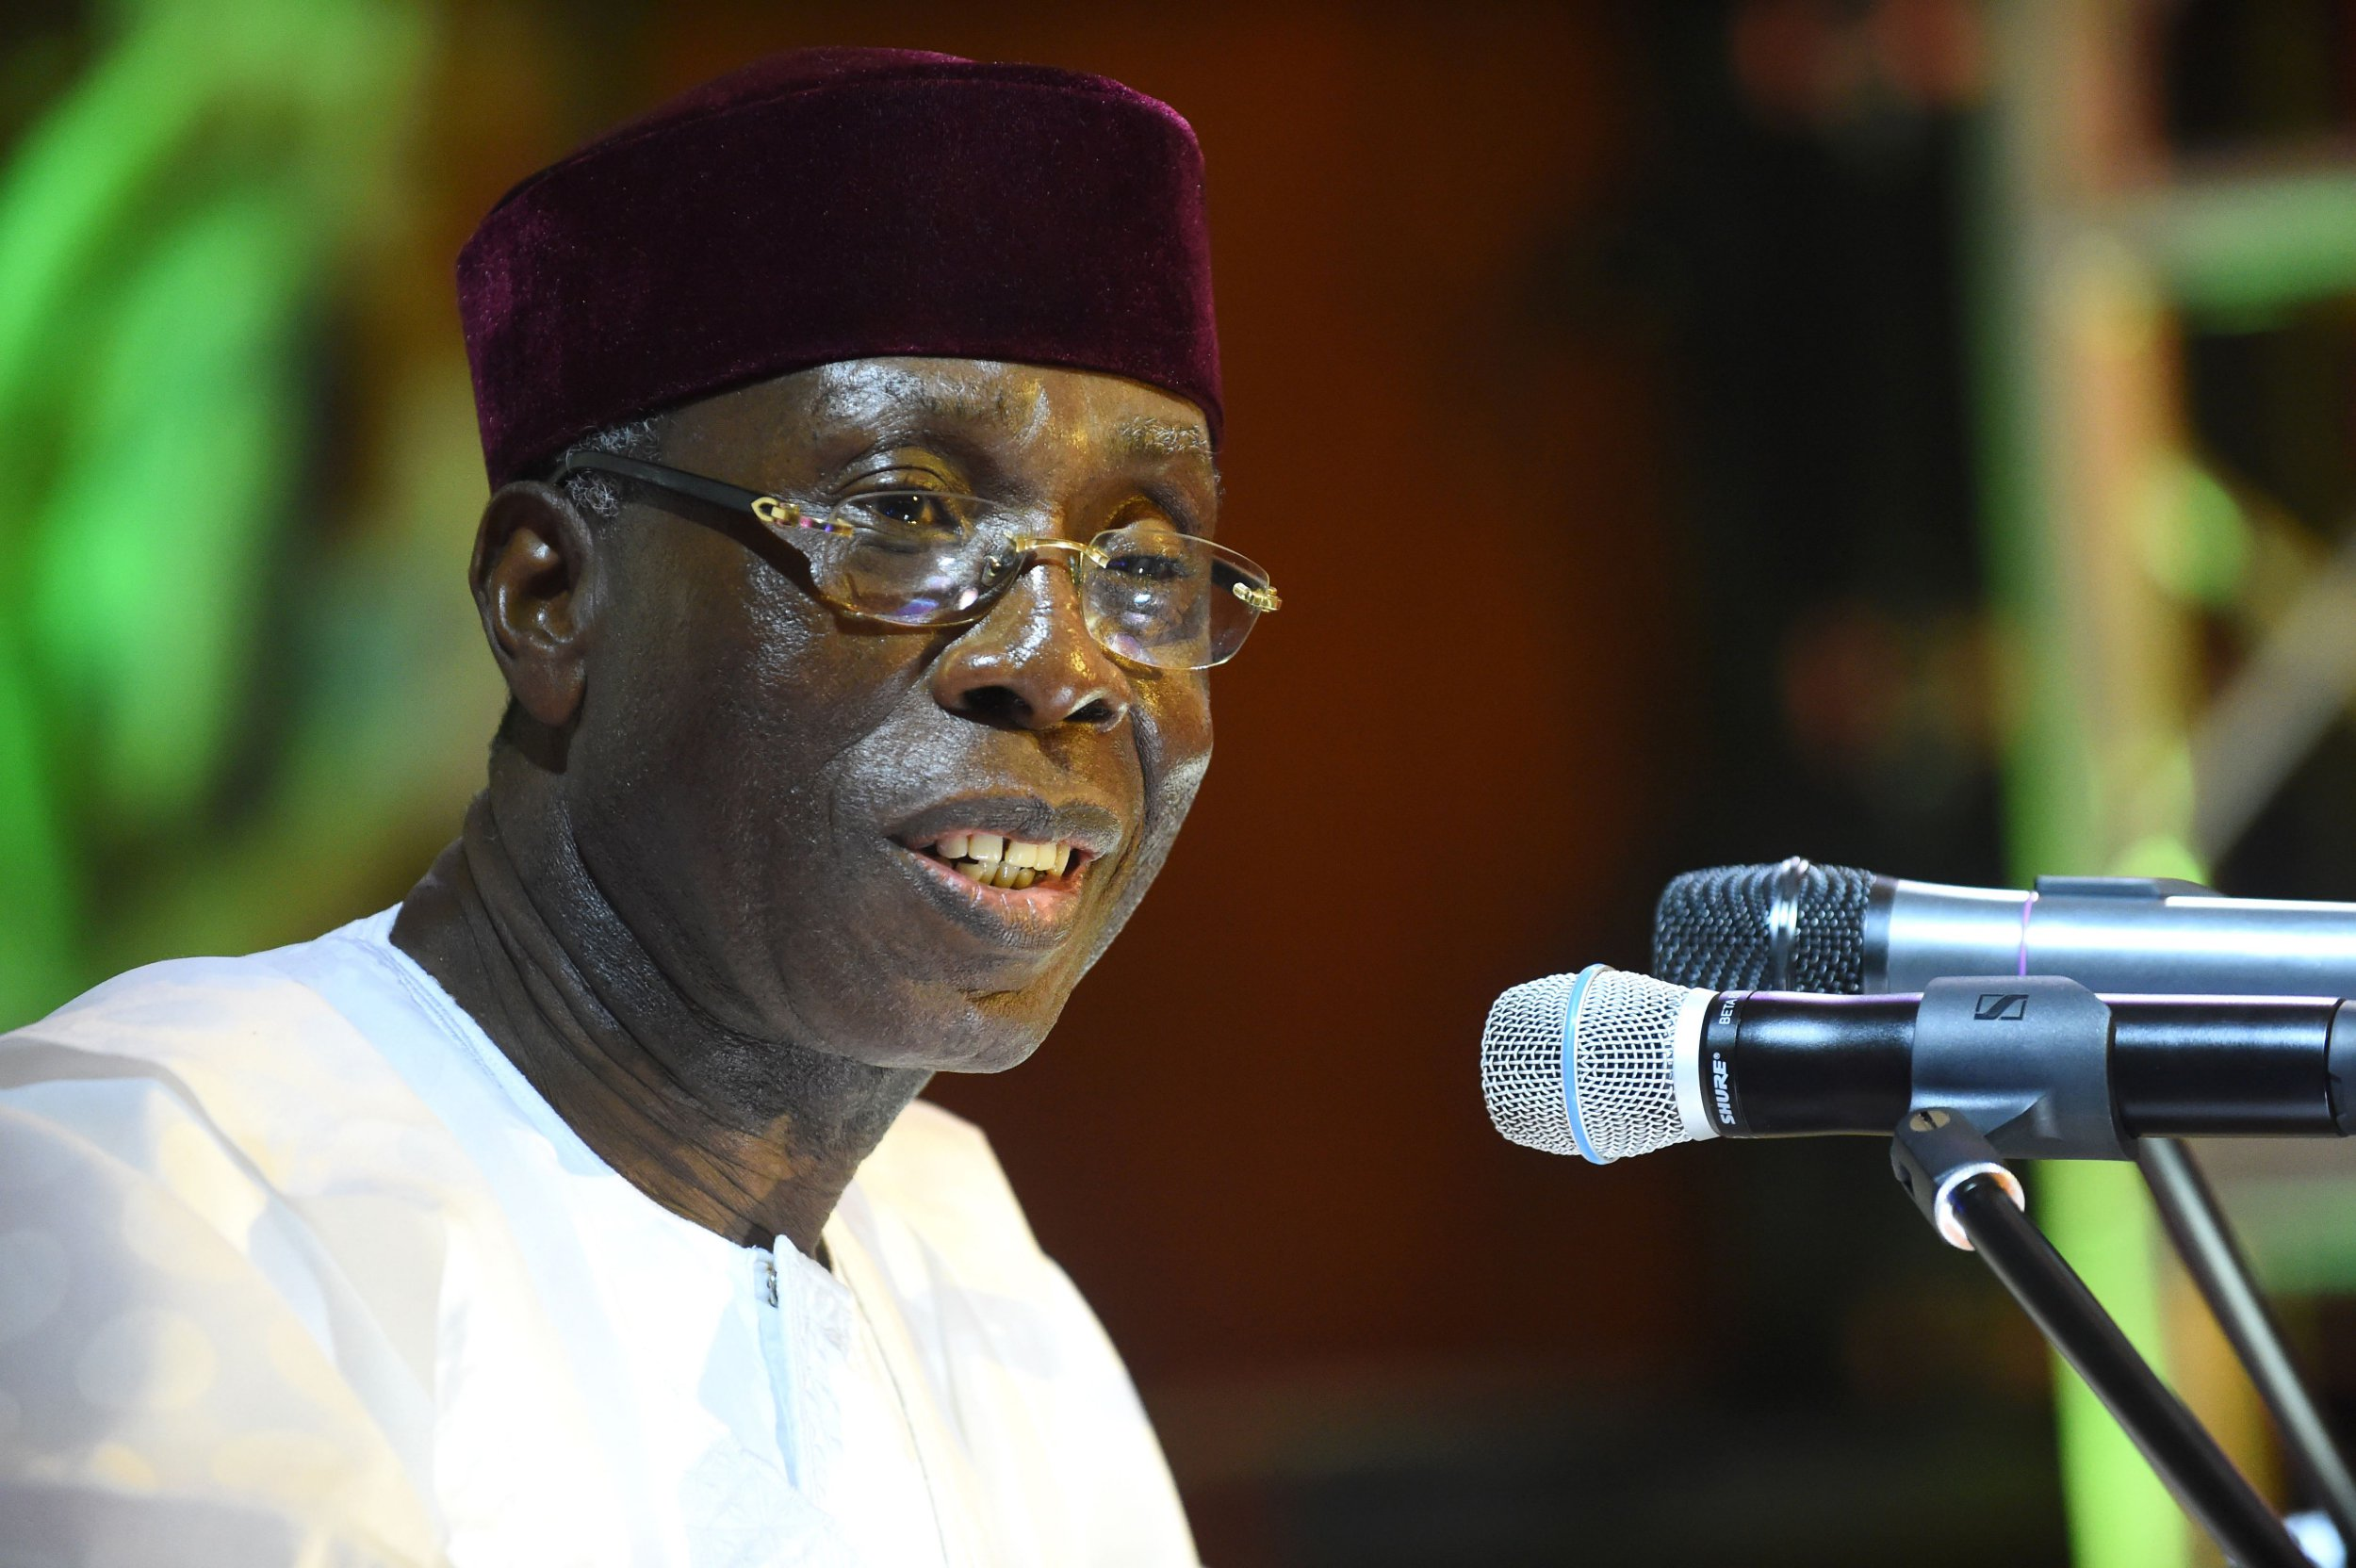 Nigerian Minister of Agriculture Audu Ogbeh speaks during the 50th anniversary of the International Institute for Tropical Agriculture (IITA) in Ibadan, Oyo State in southwest Nigeria, on July 24, 2017. The International Institute for Tropical Agriculture (IITA) celebrated its 50 years of research achievements in addressing Africas most pressing challenges of hunger, malnutrition, poverty, and natural resource degradation with a view to improving livelihoods, enhance food and nutrition security across the continent. / AFP PHOTO / PIUS UTOMI EKPEI (Photo credit should read PIUS UTOMI EKPEI/AFP/Getty Images)